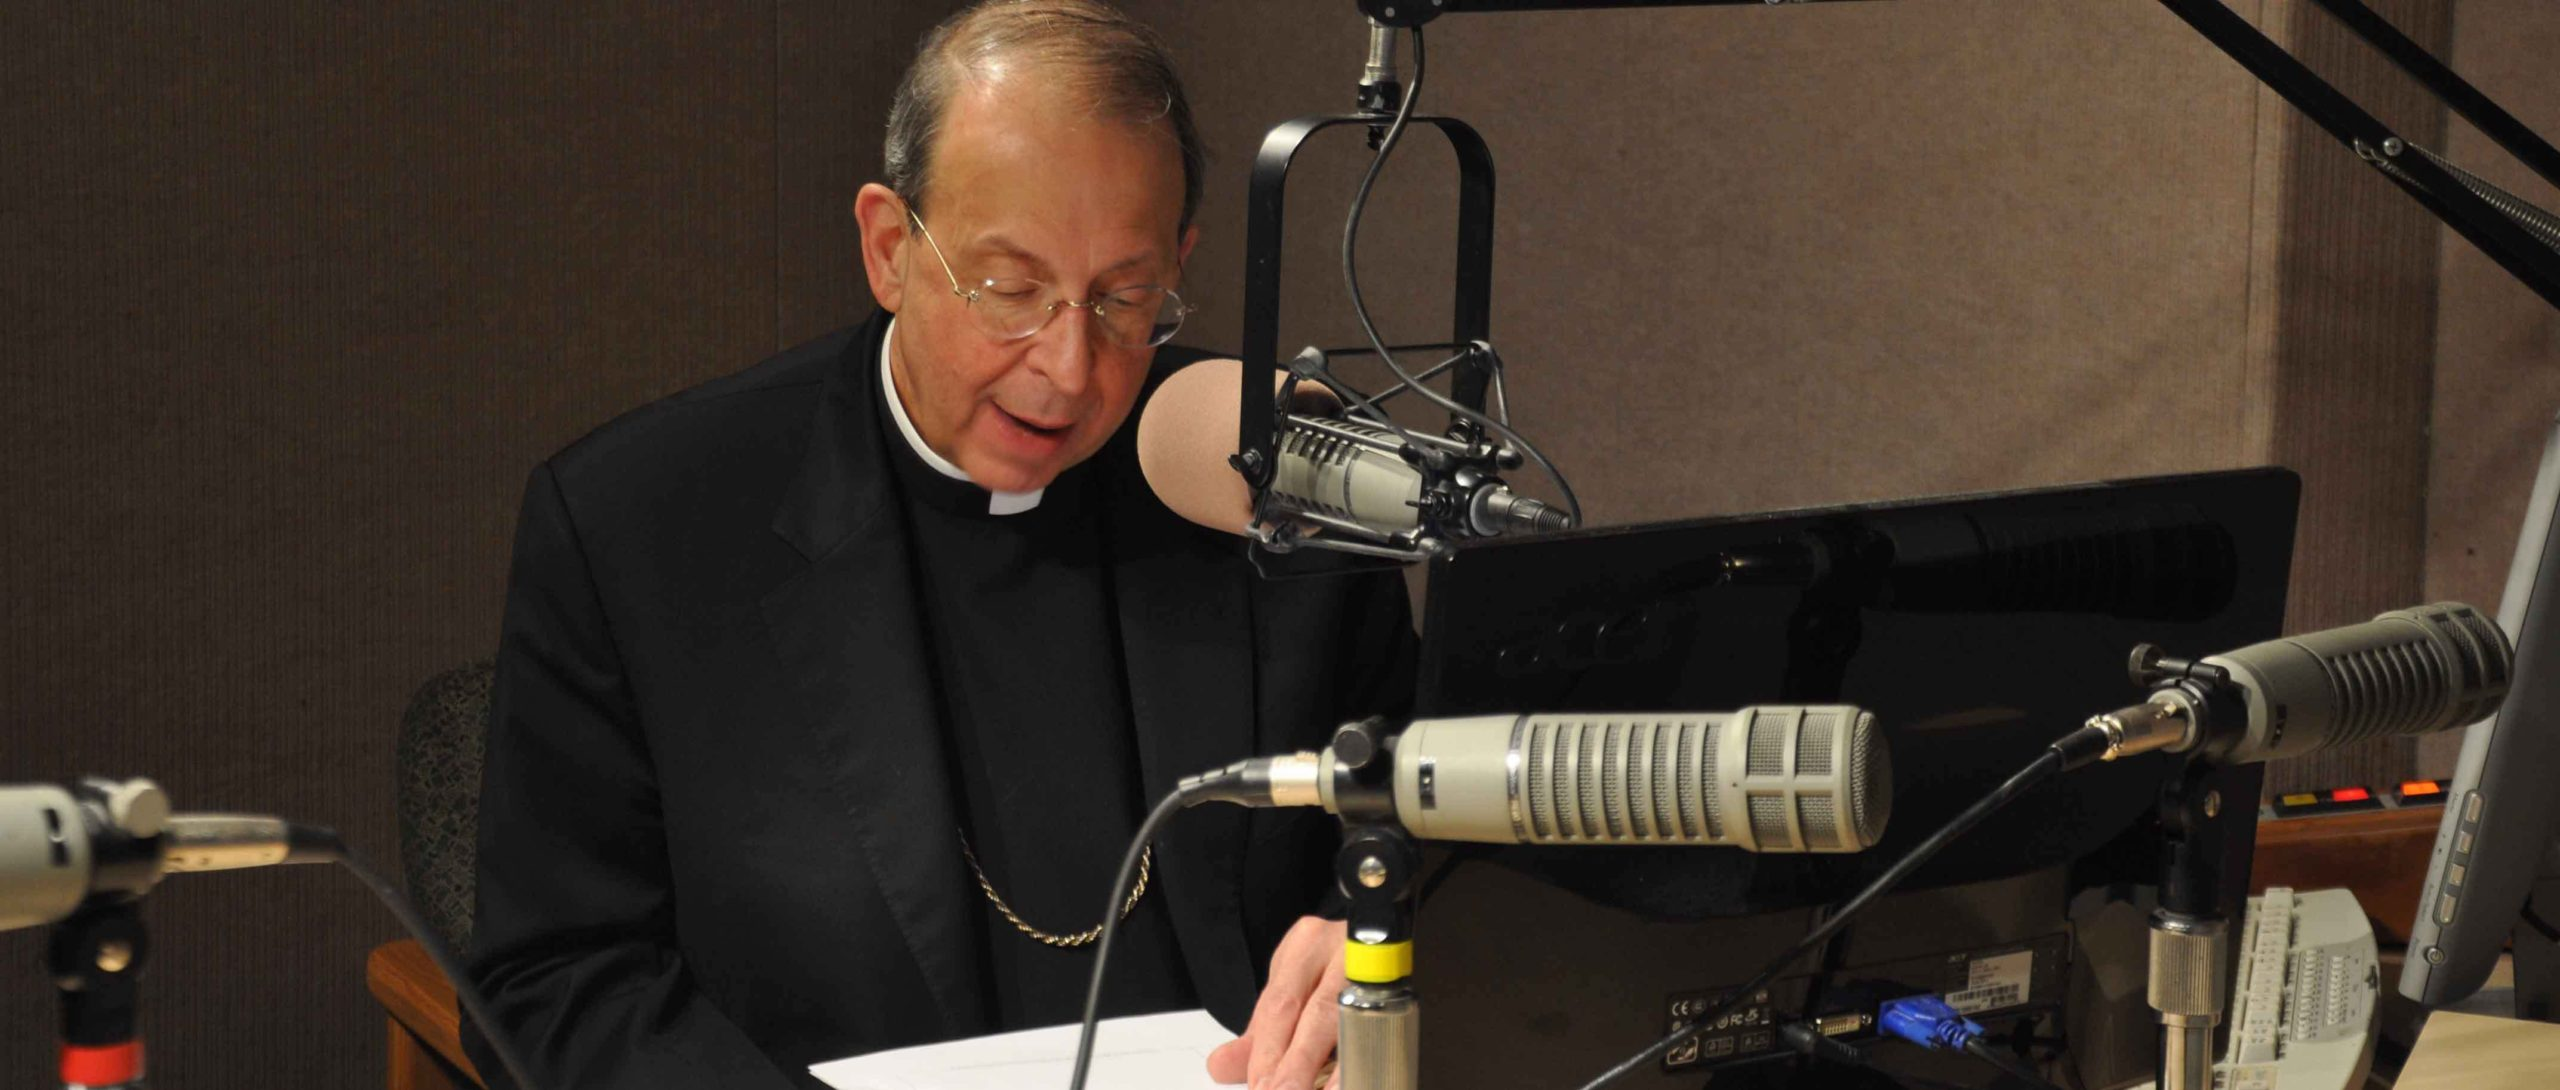 Catholic Communications Campaign helps spread Good News